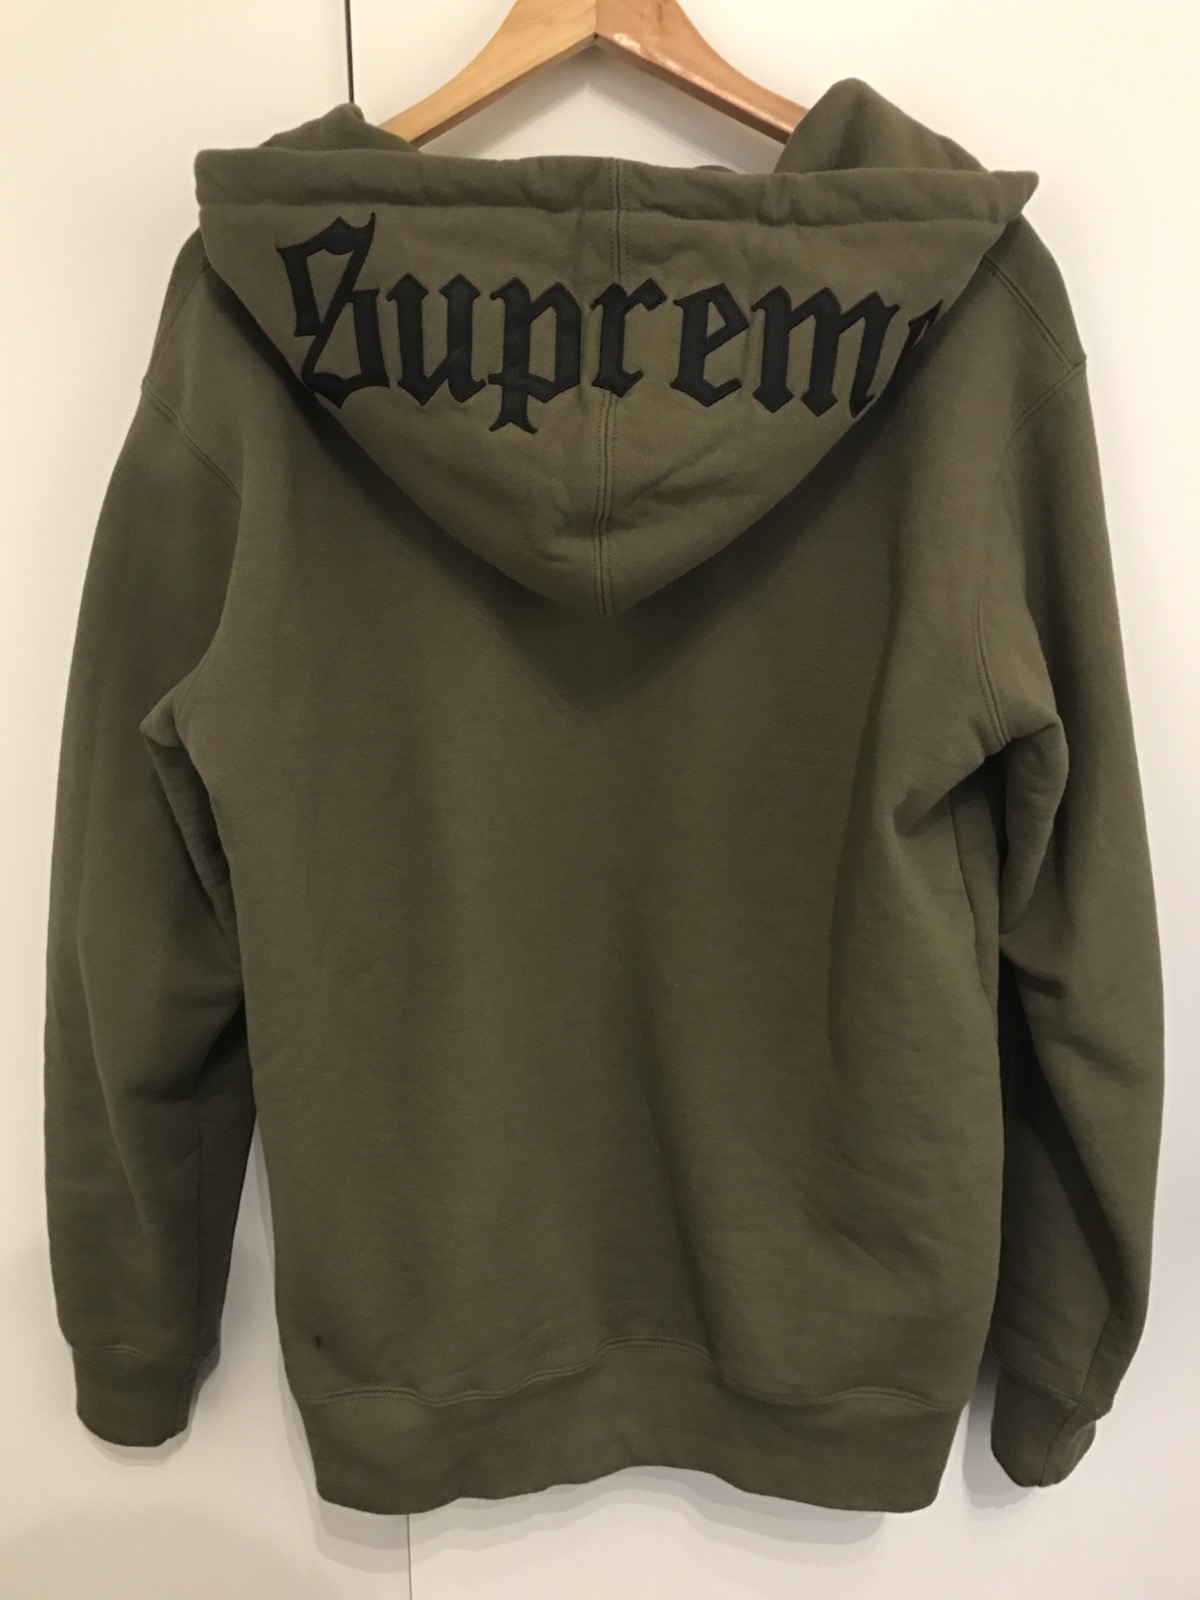 deb220c40e5e Supreme Old English Font Logo Hoodie (Olive Green) Size l - Sweatshirts    Hoodies for Sale - Grailed